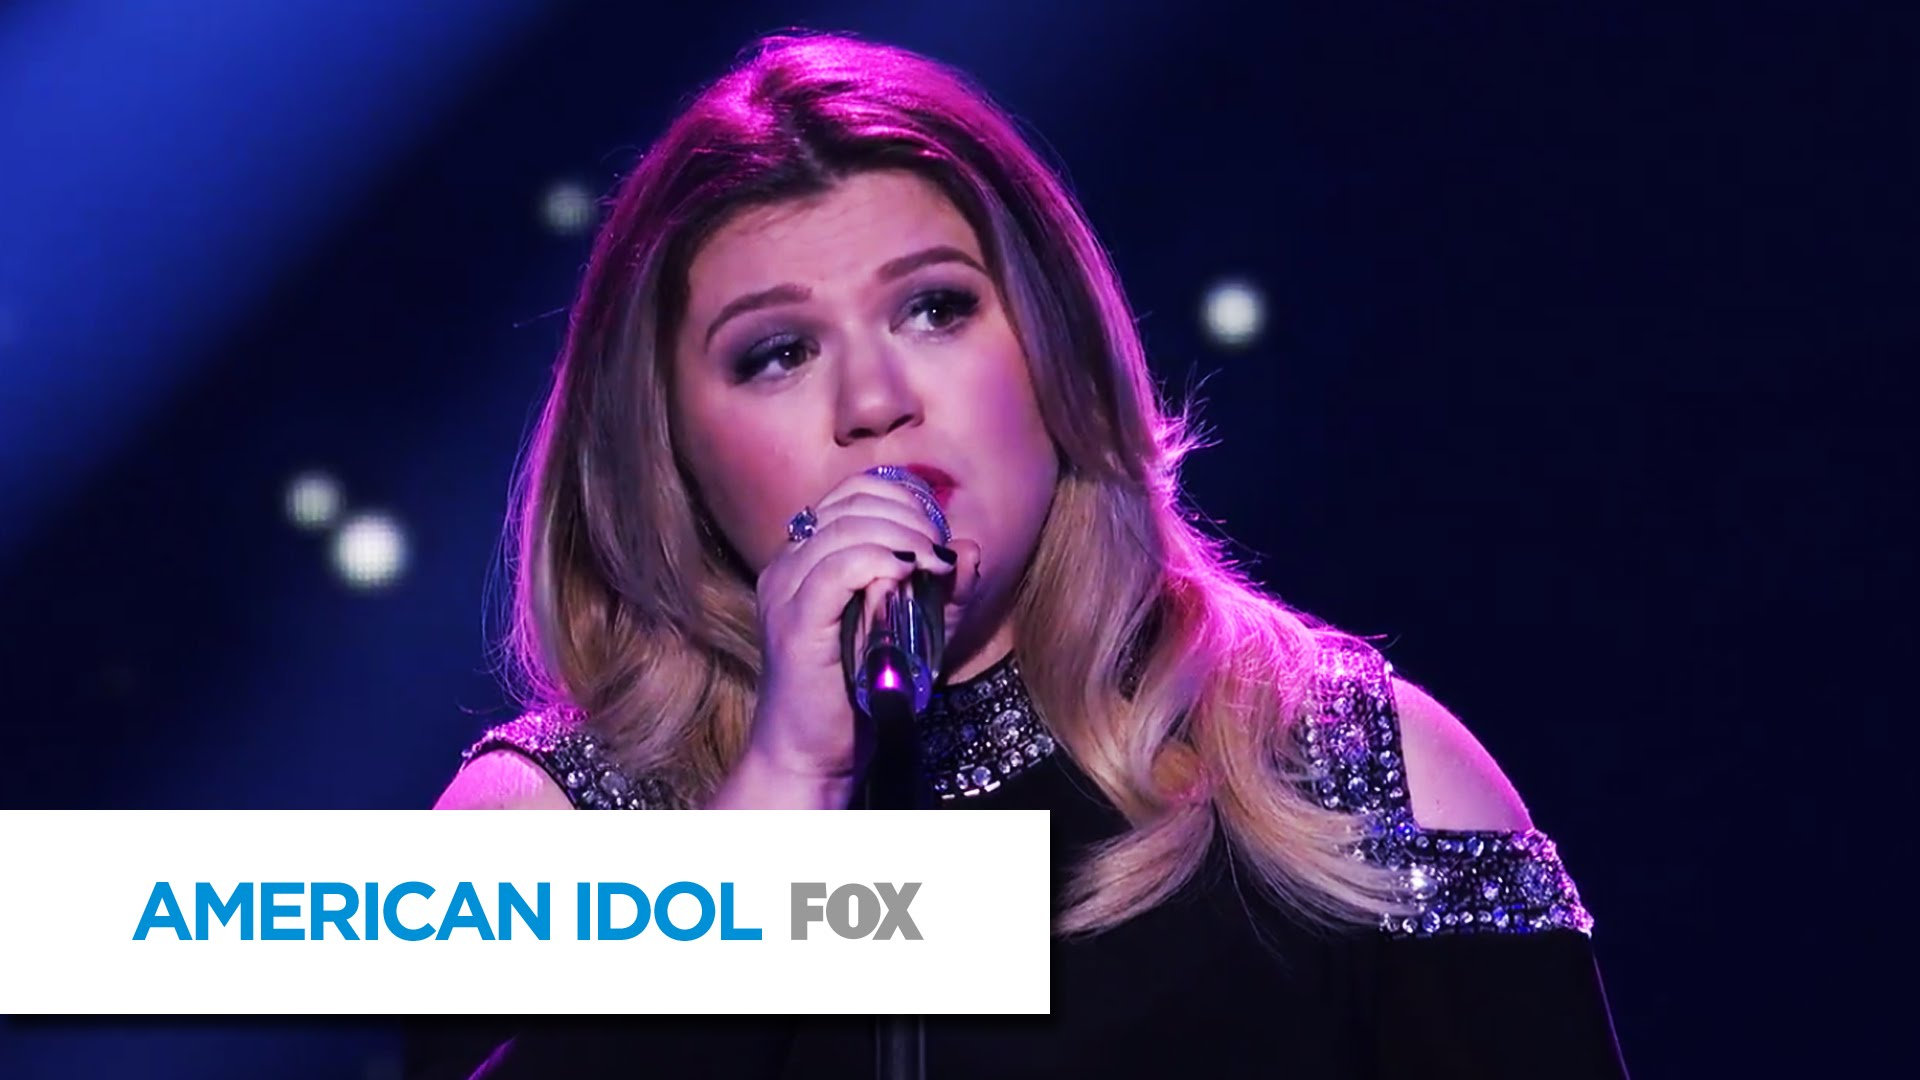 Kelly Clarkson releases 'Piece by Piece (Idol Version)'; remix album to follow